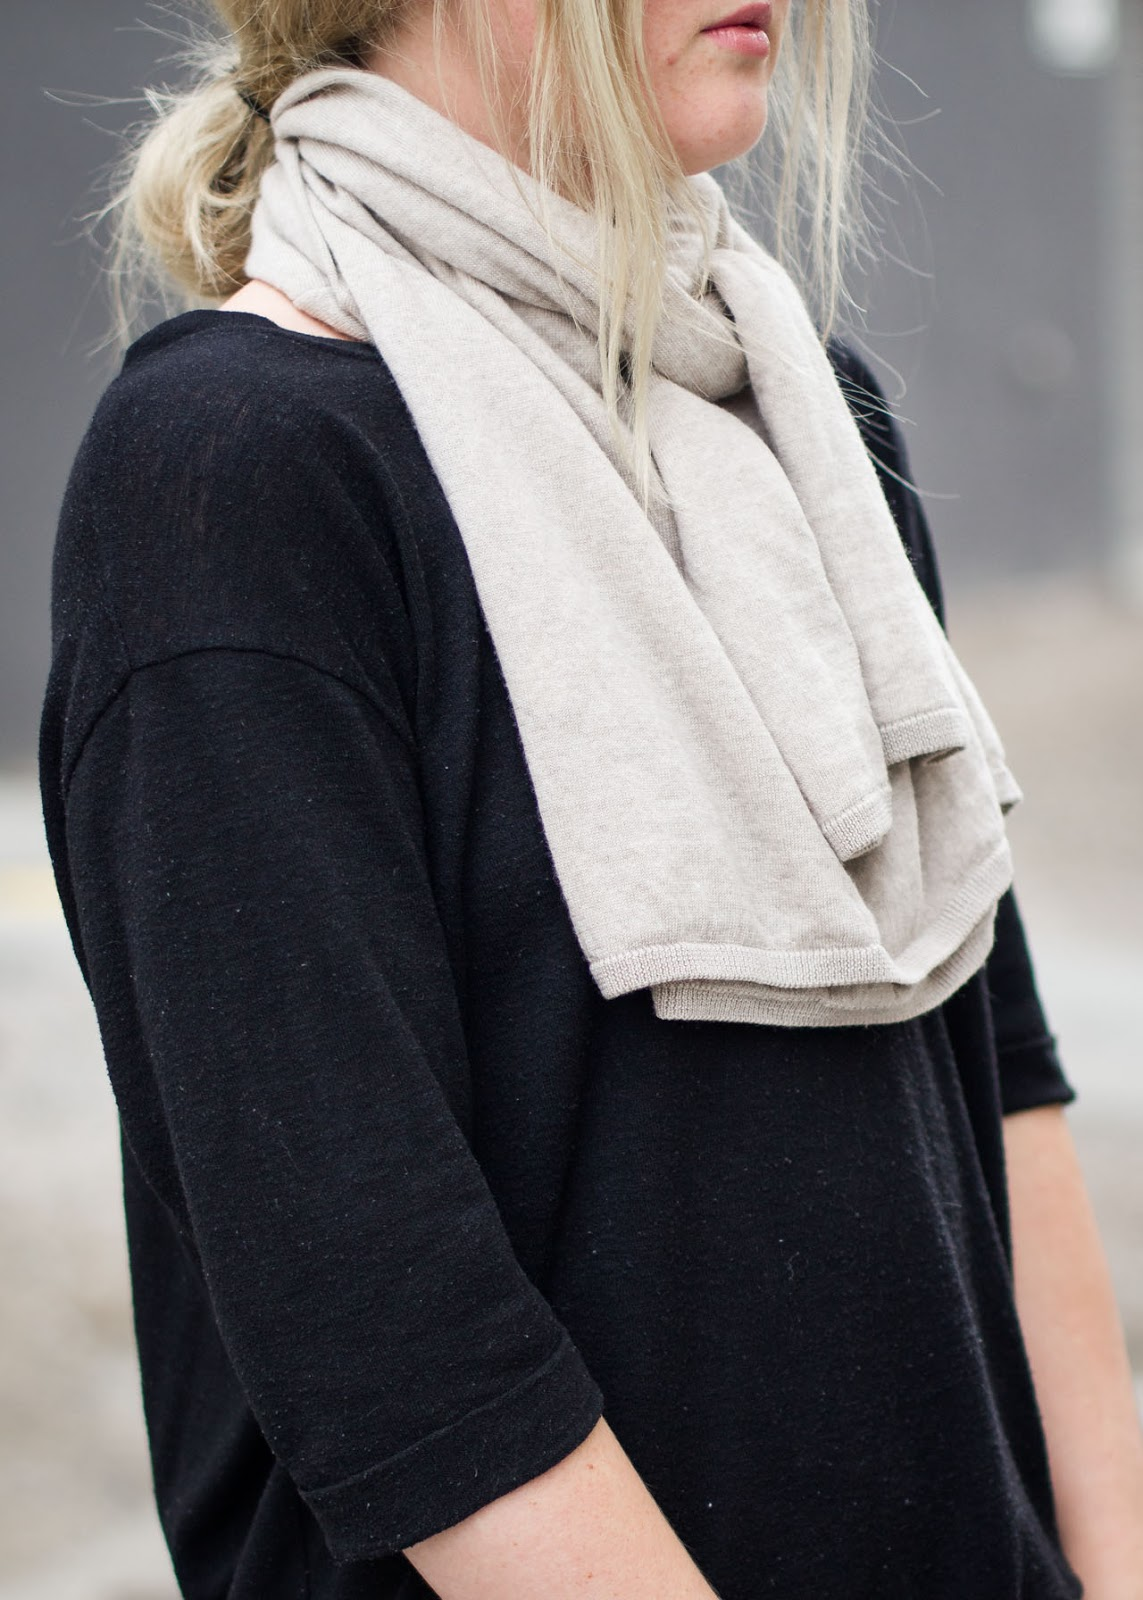 How to style a sweater as a scarf - Canadian Fashion / Style Blogger - Anine Bing